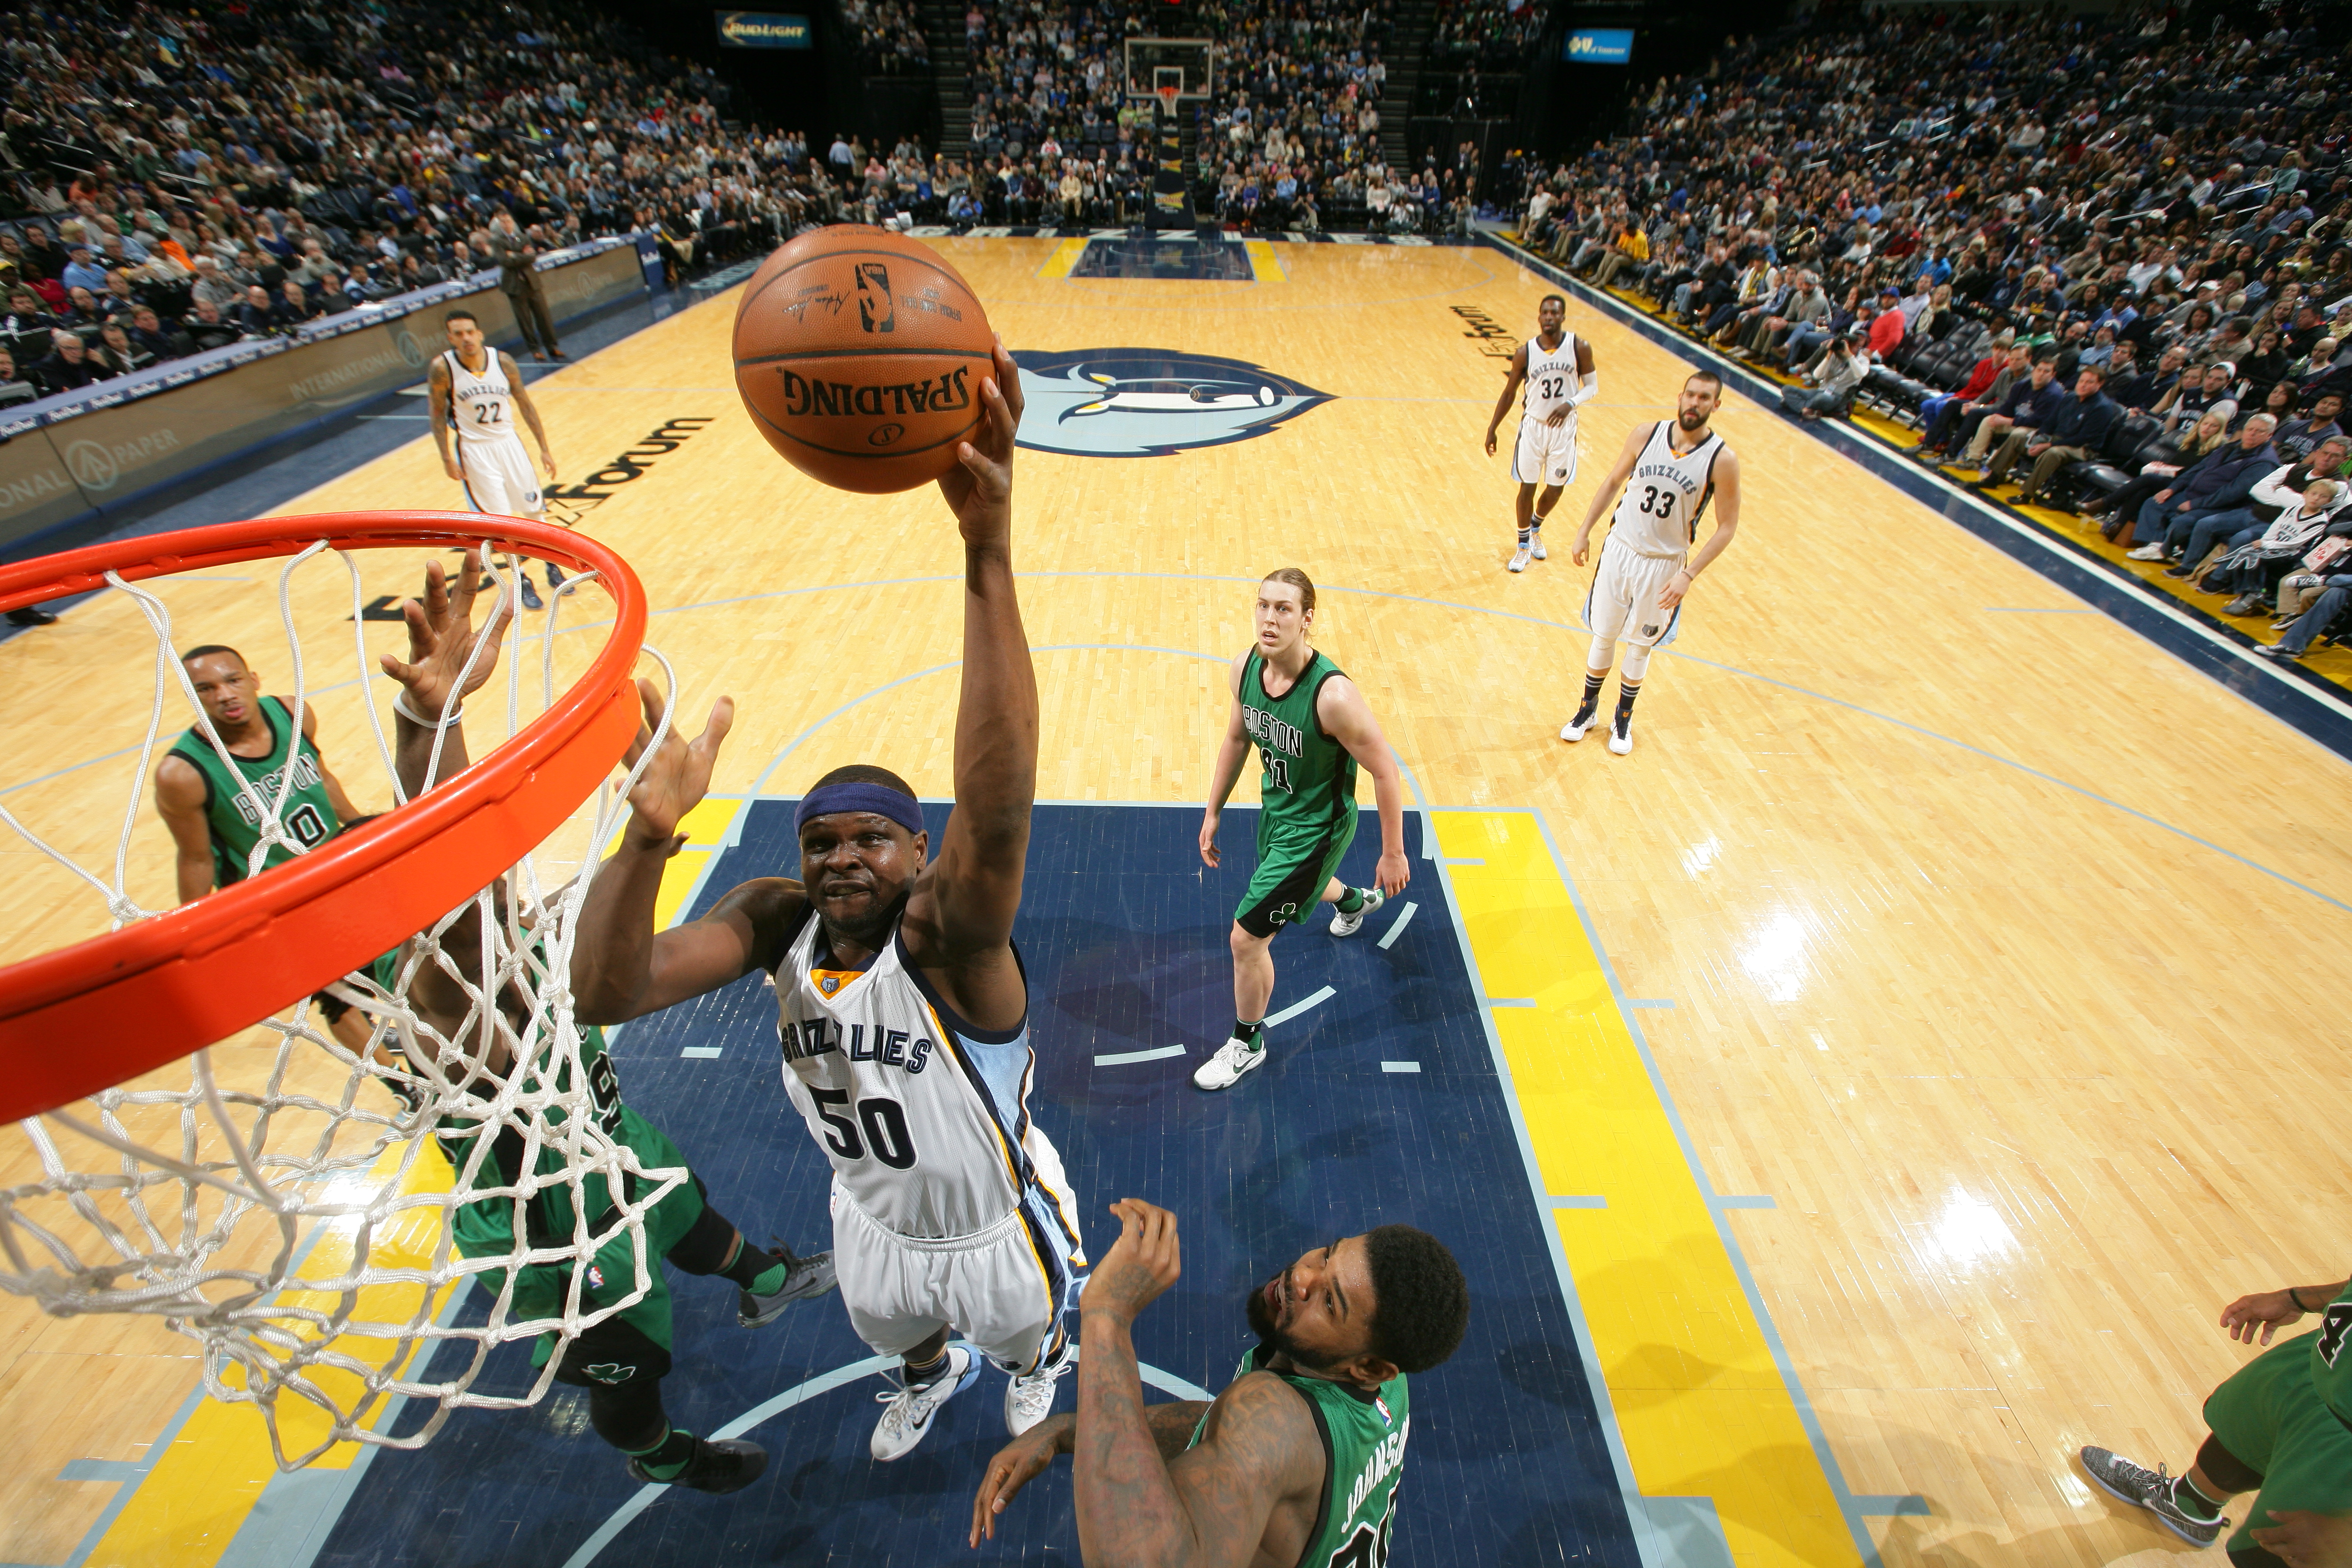 MEMPHIS, TN - JANUARY 10:  Zach Randolph #50 of the Memphis Grizzlies shoots the ball against the Boston Celtics on January 10, 2016 at FedExForum in Memphis, Tennessee. (Photo by Joe Murphy/NBAE via Getty Images)